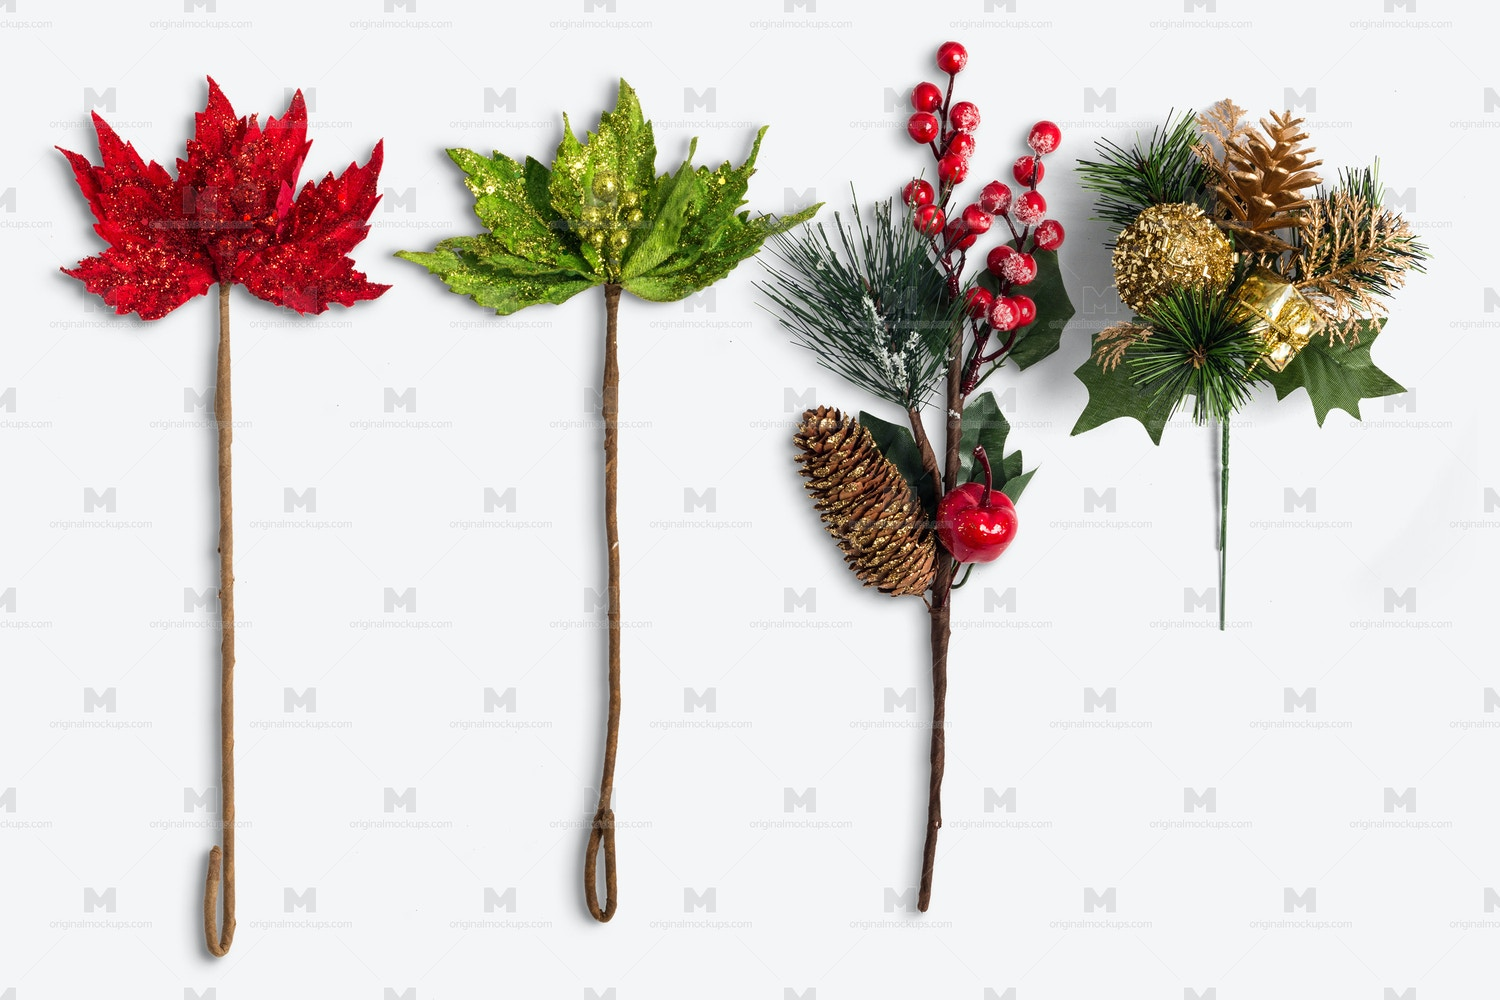 Christmas Flowers Isolate by Original Mockups on Original Mockups